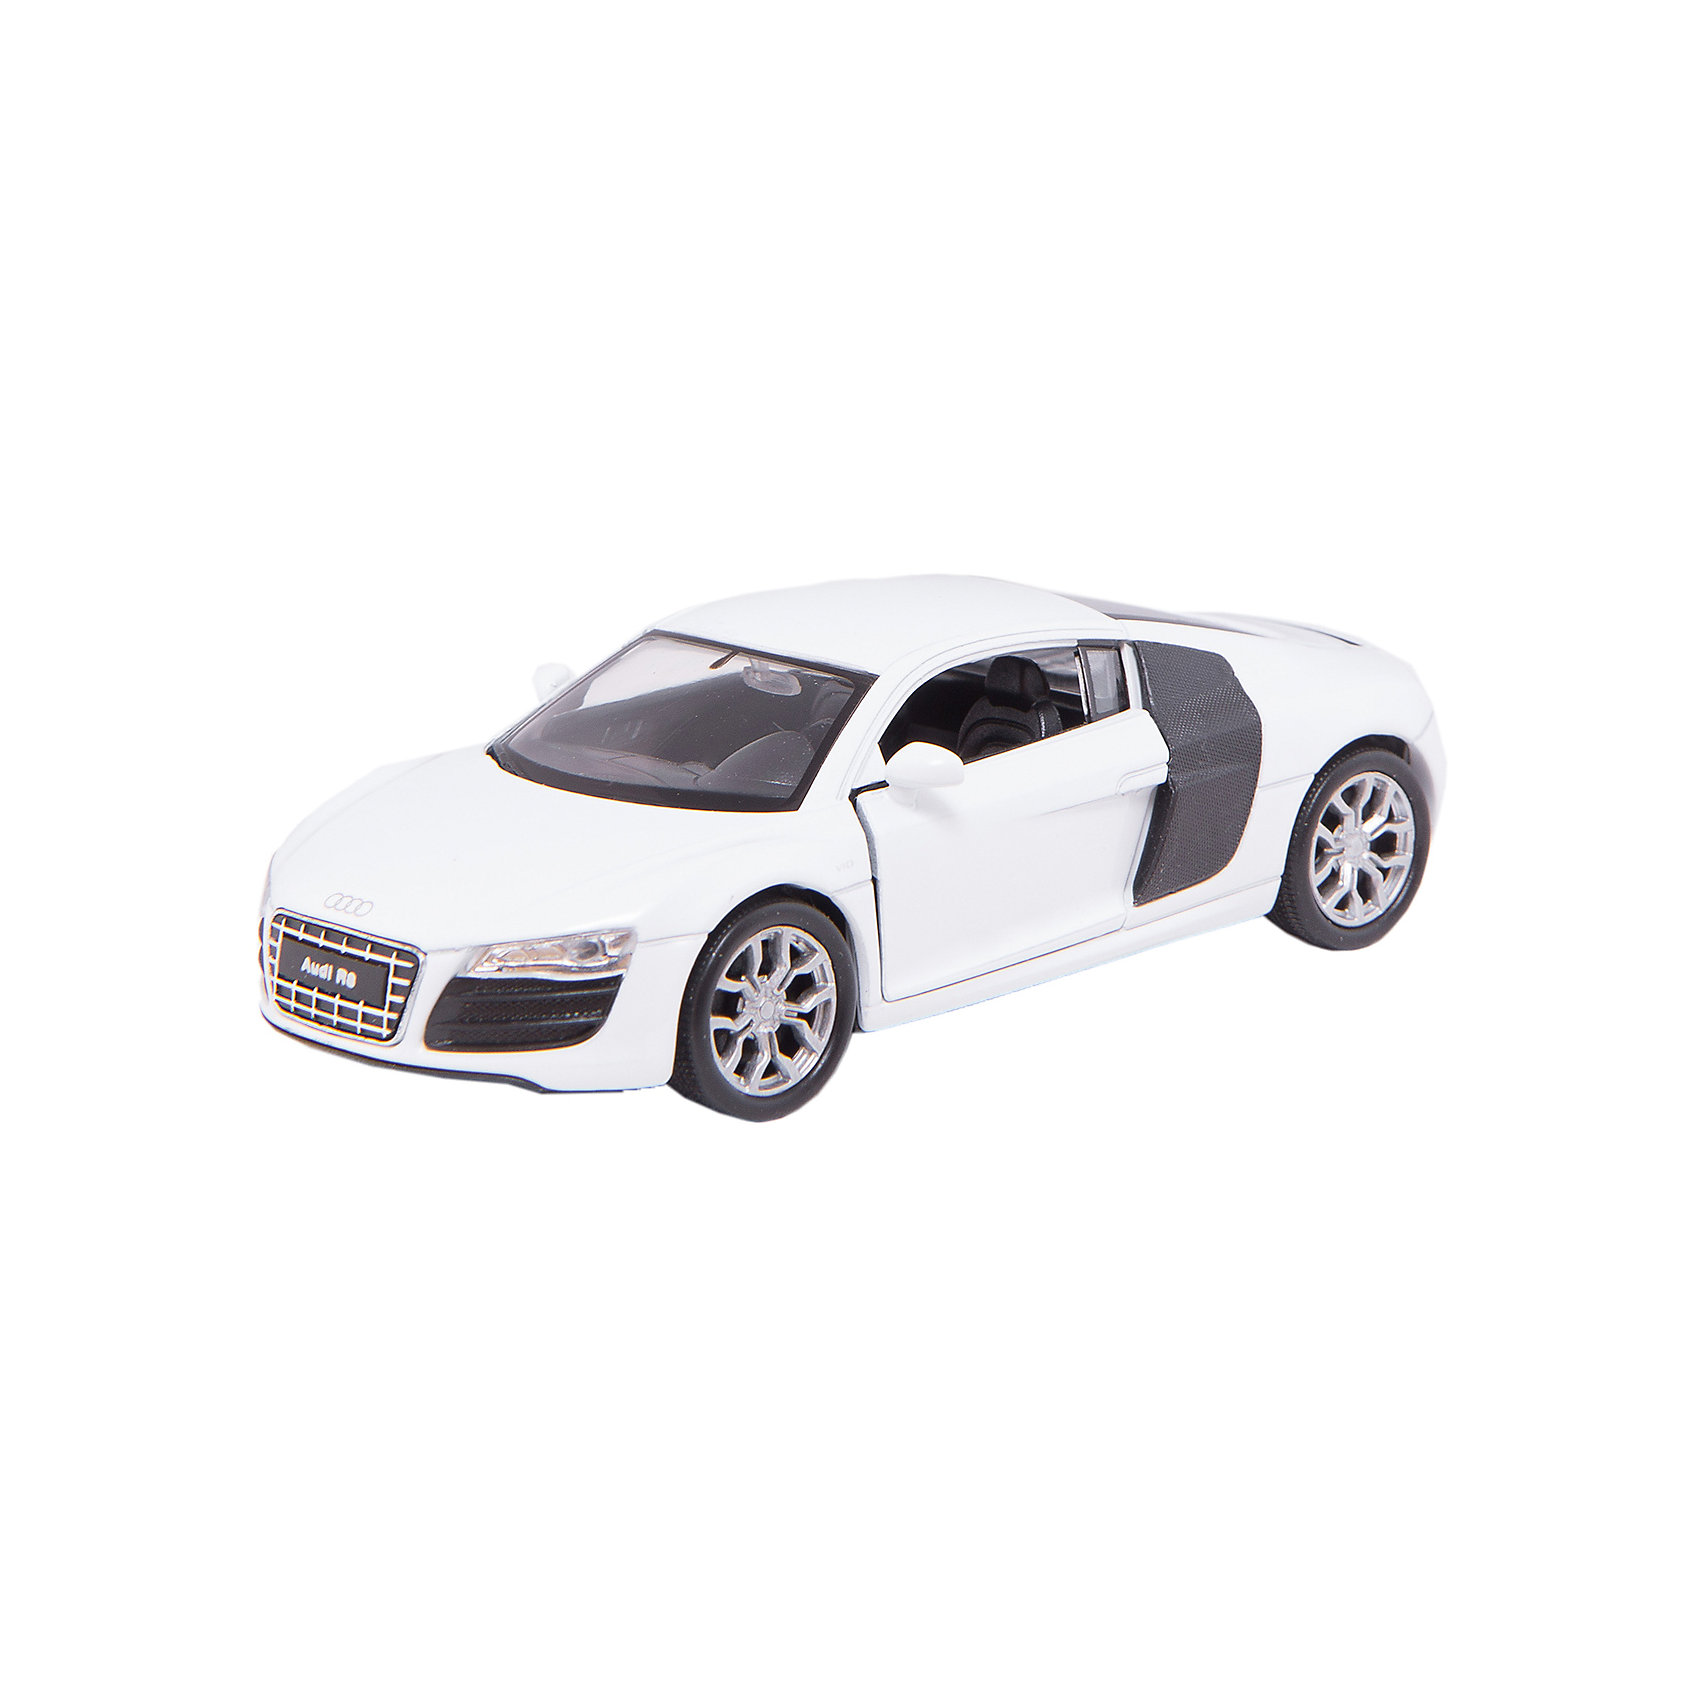 Welly Модель машины 1:34-39 Audi R8, Welly автомобиль welly nissan gtr 1 34 39 белый 43632